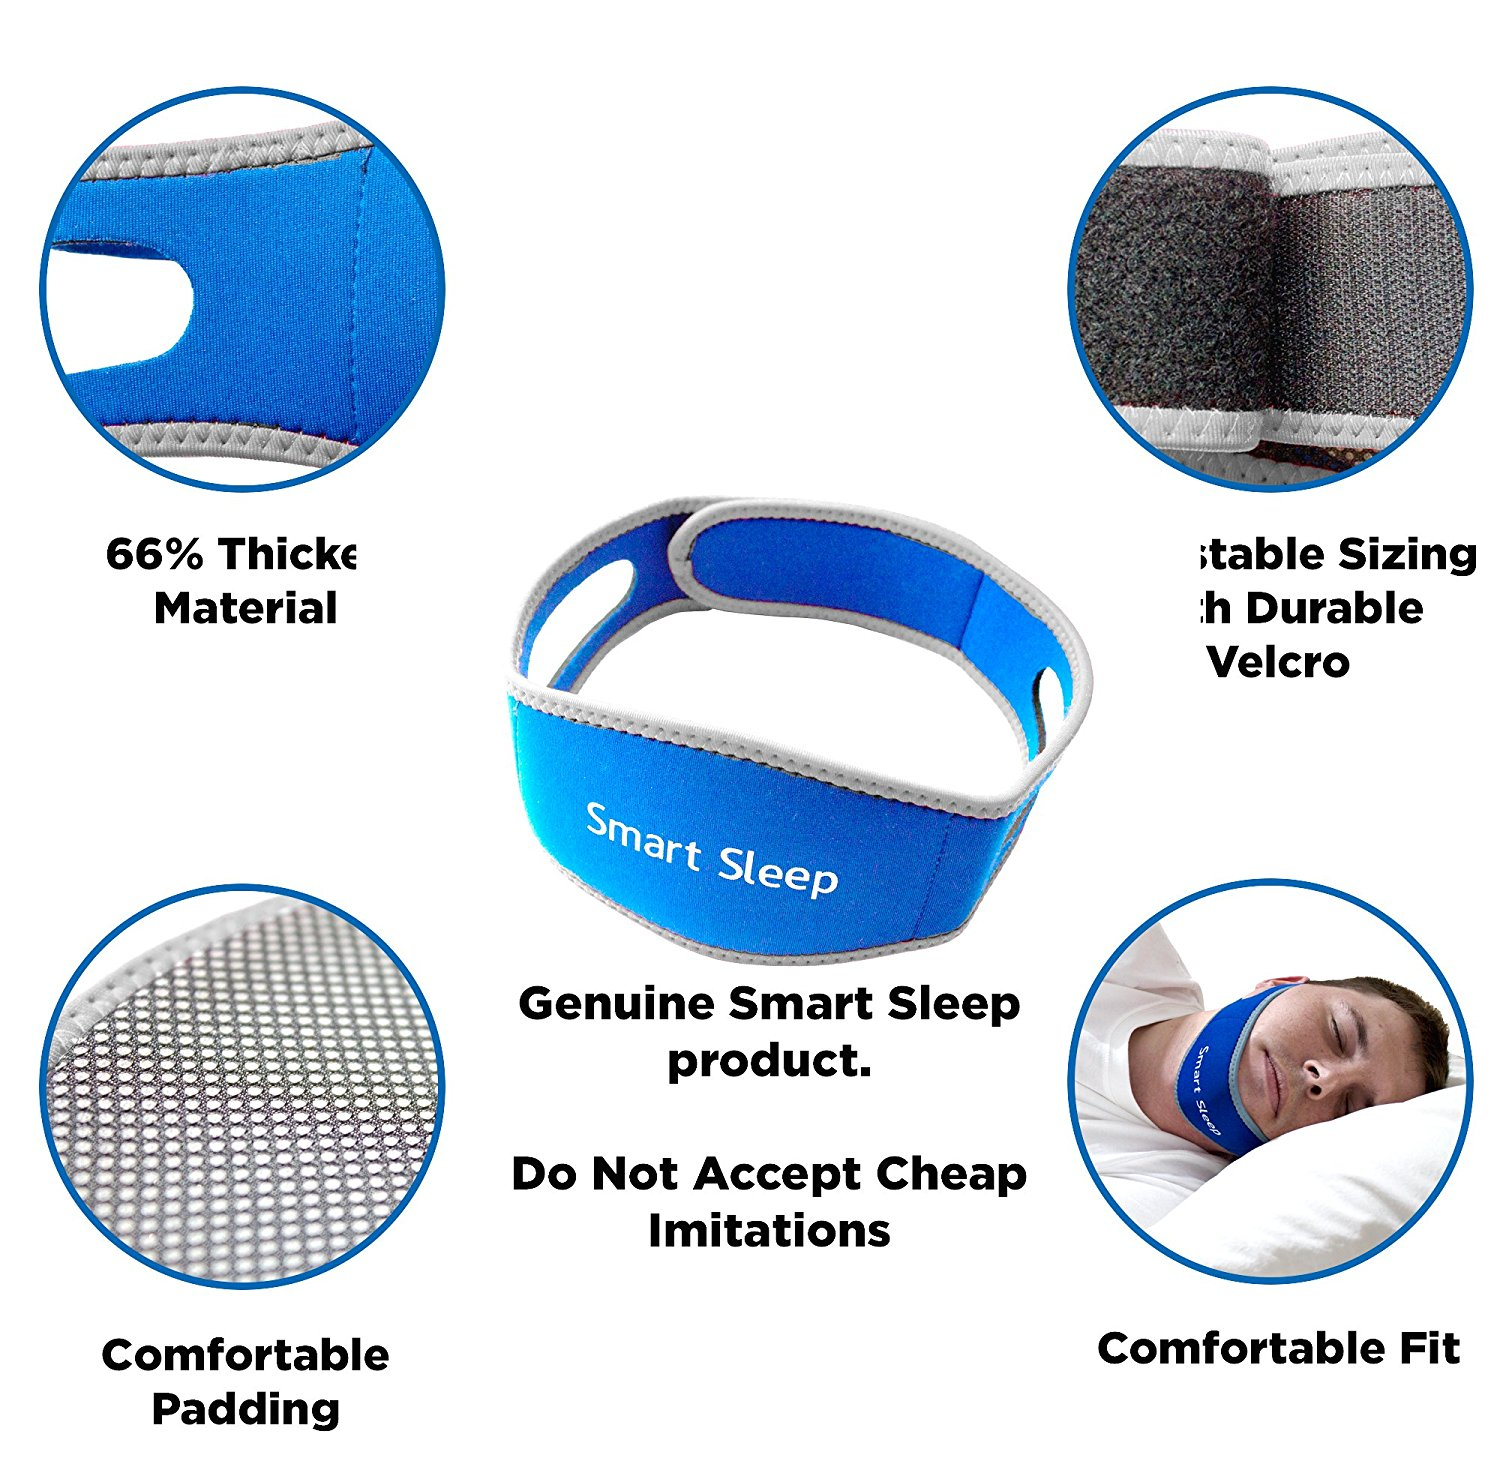 Smart Sleep Dream Strap - Adjustable Anti Snore Chin Belt - Stops Snoring Naturally